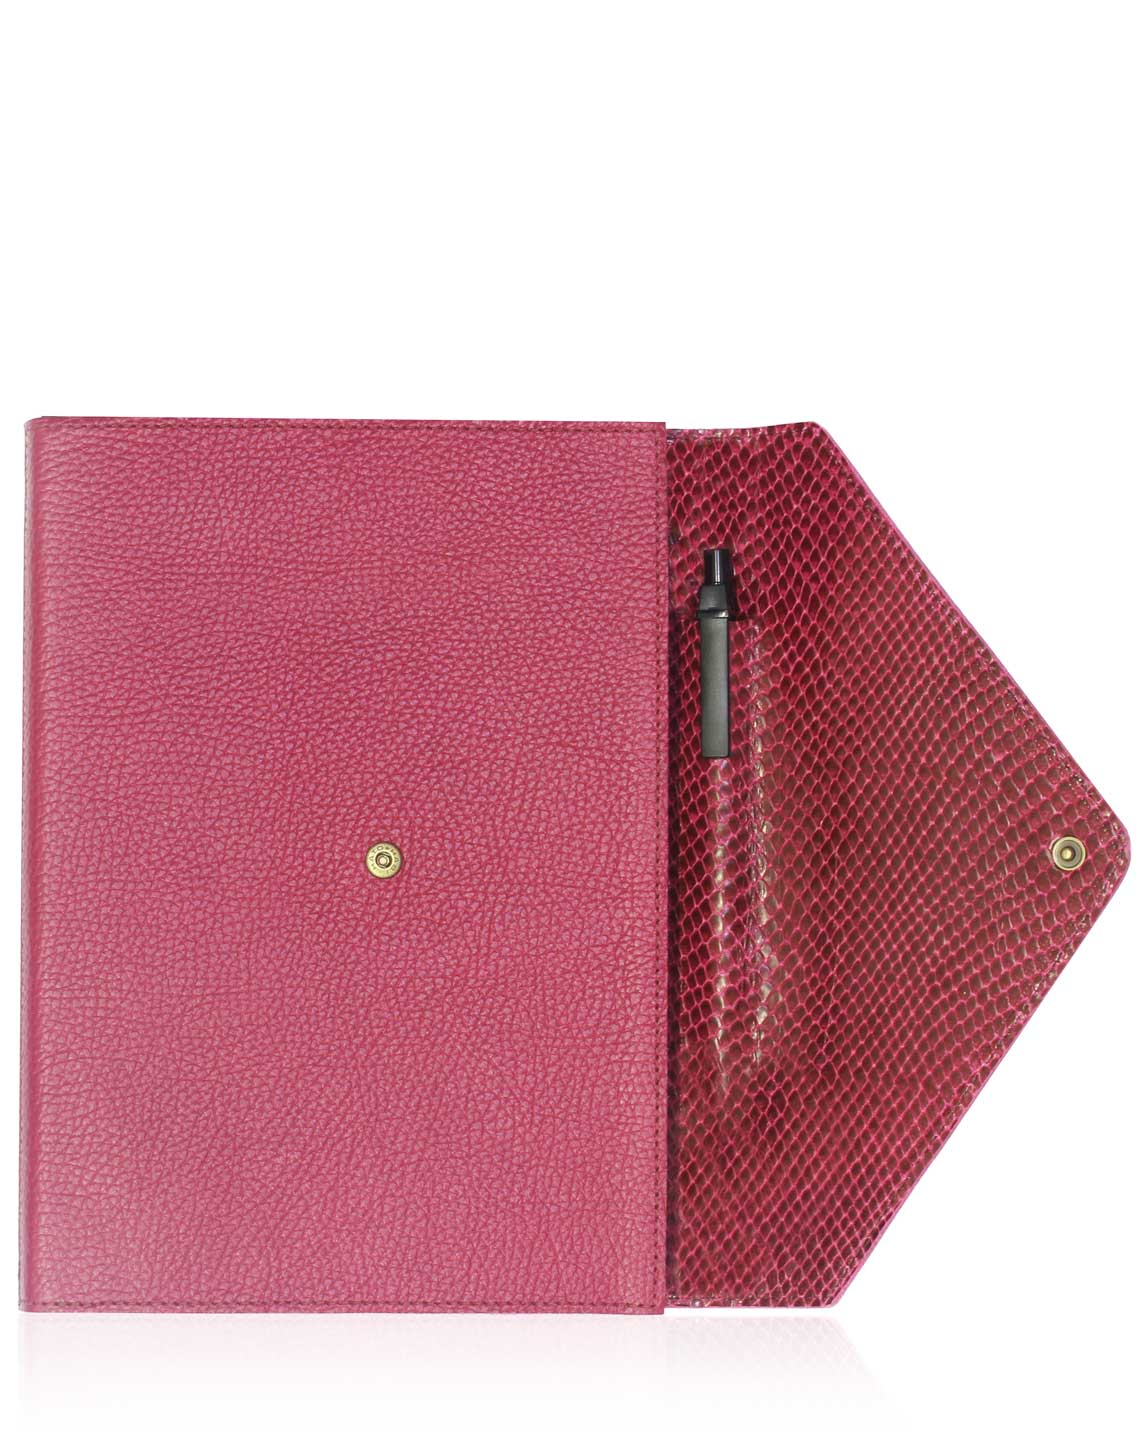 Agenda AG-108 Color Fucsia